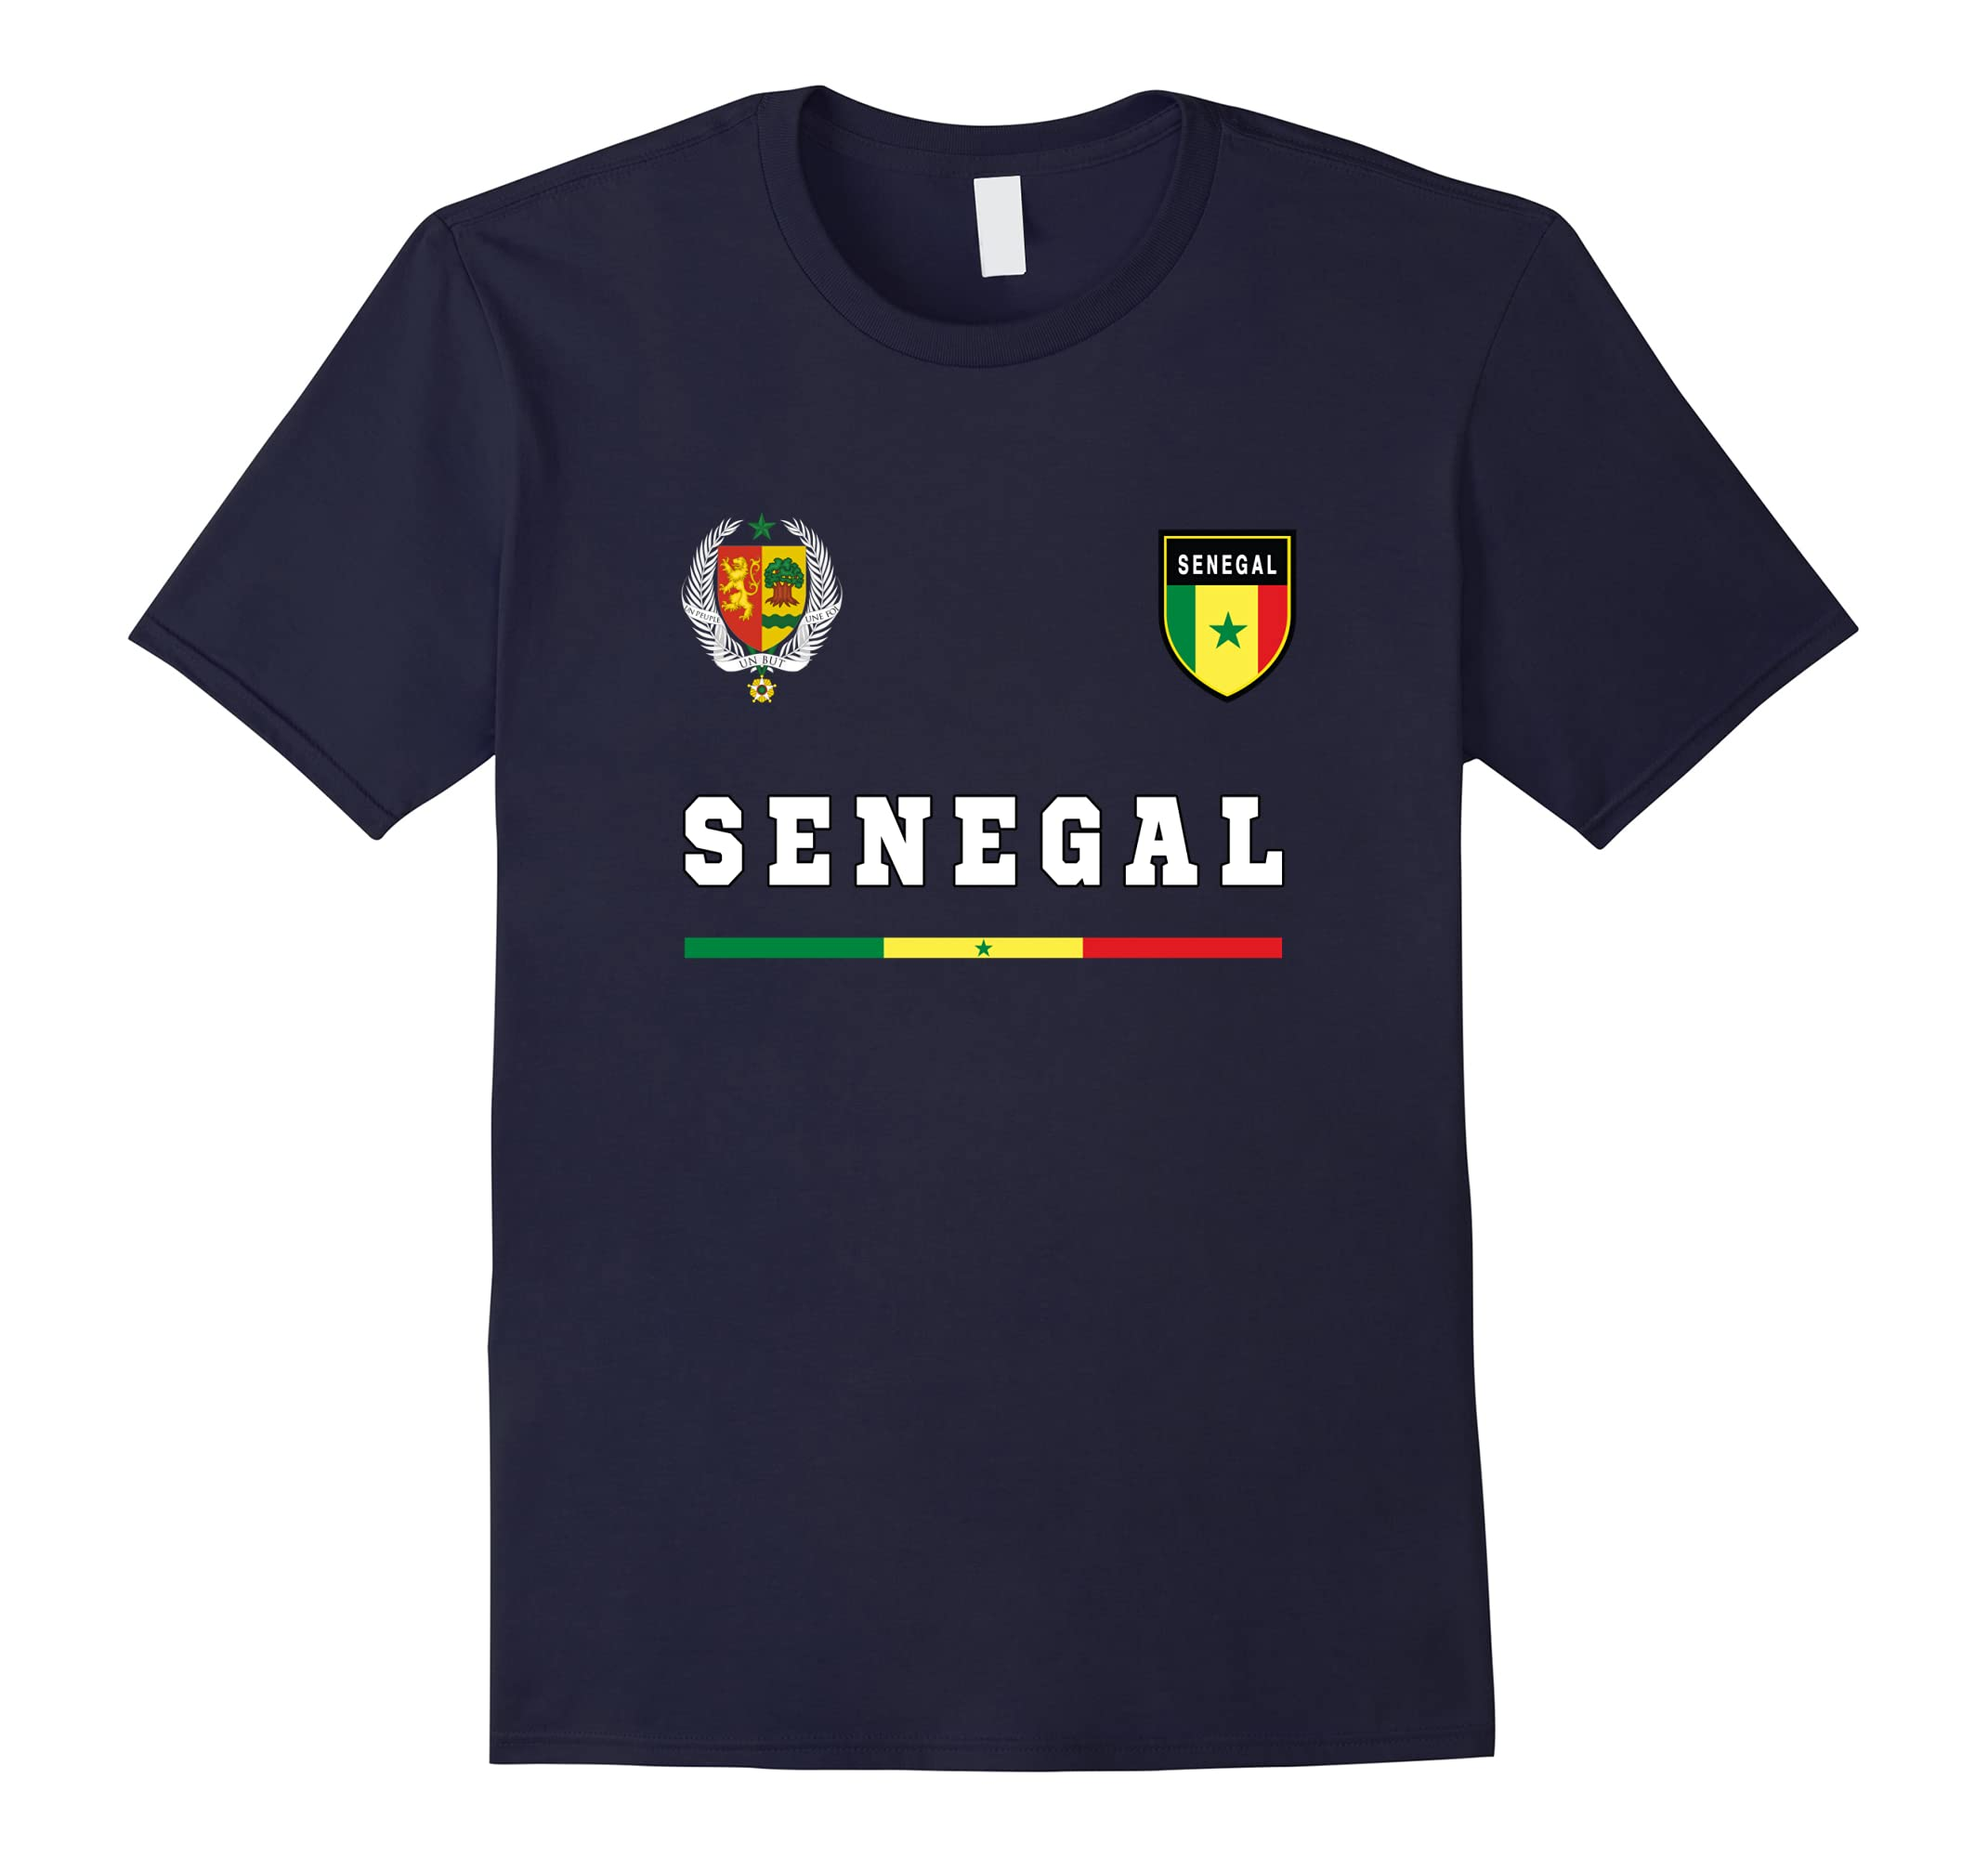 Senegal Soccer T-Shirt Retro Football Jersey Tee Sport-ah my shirt one gift